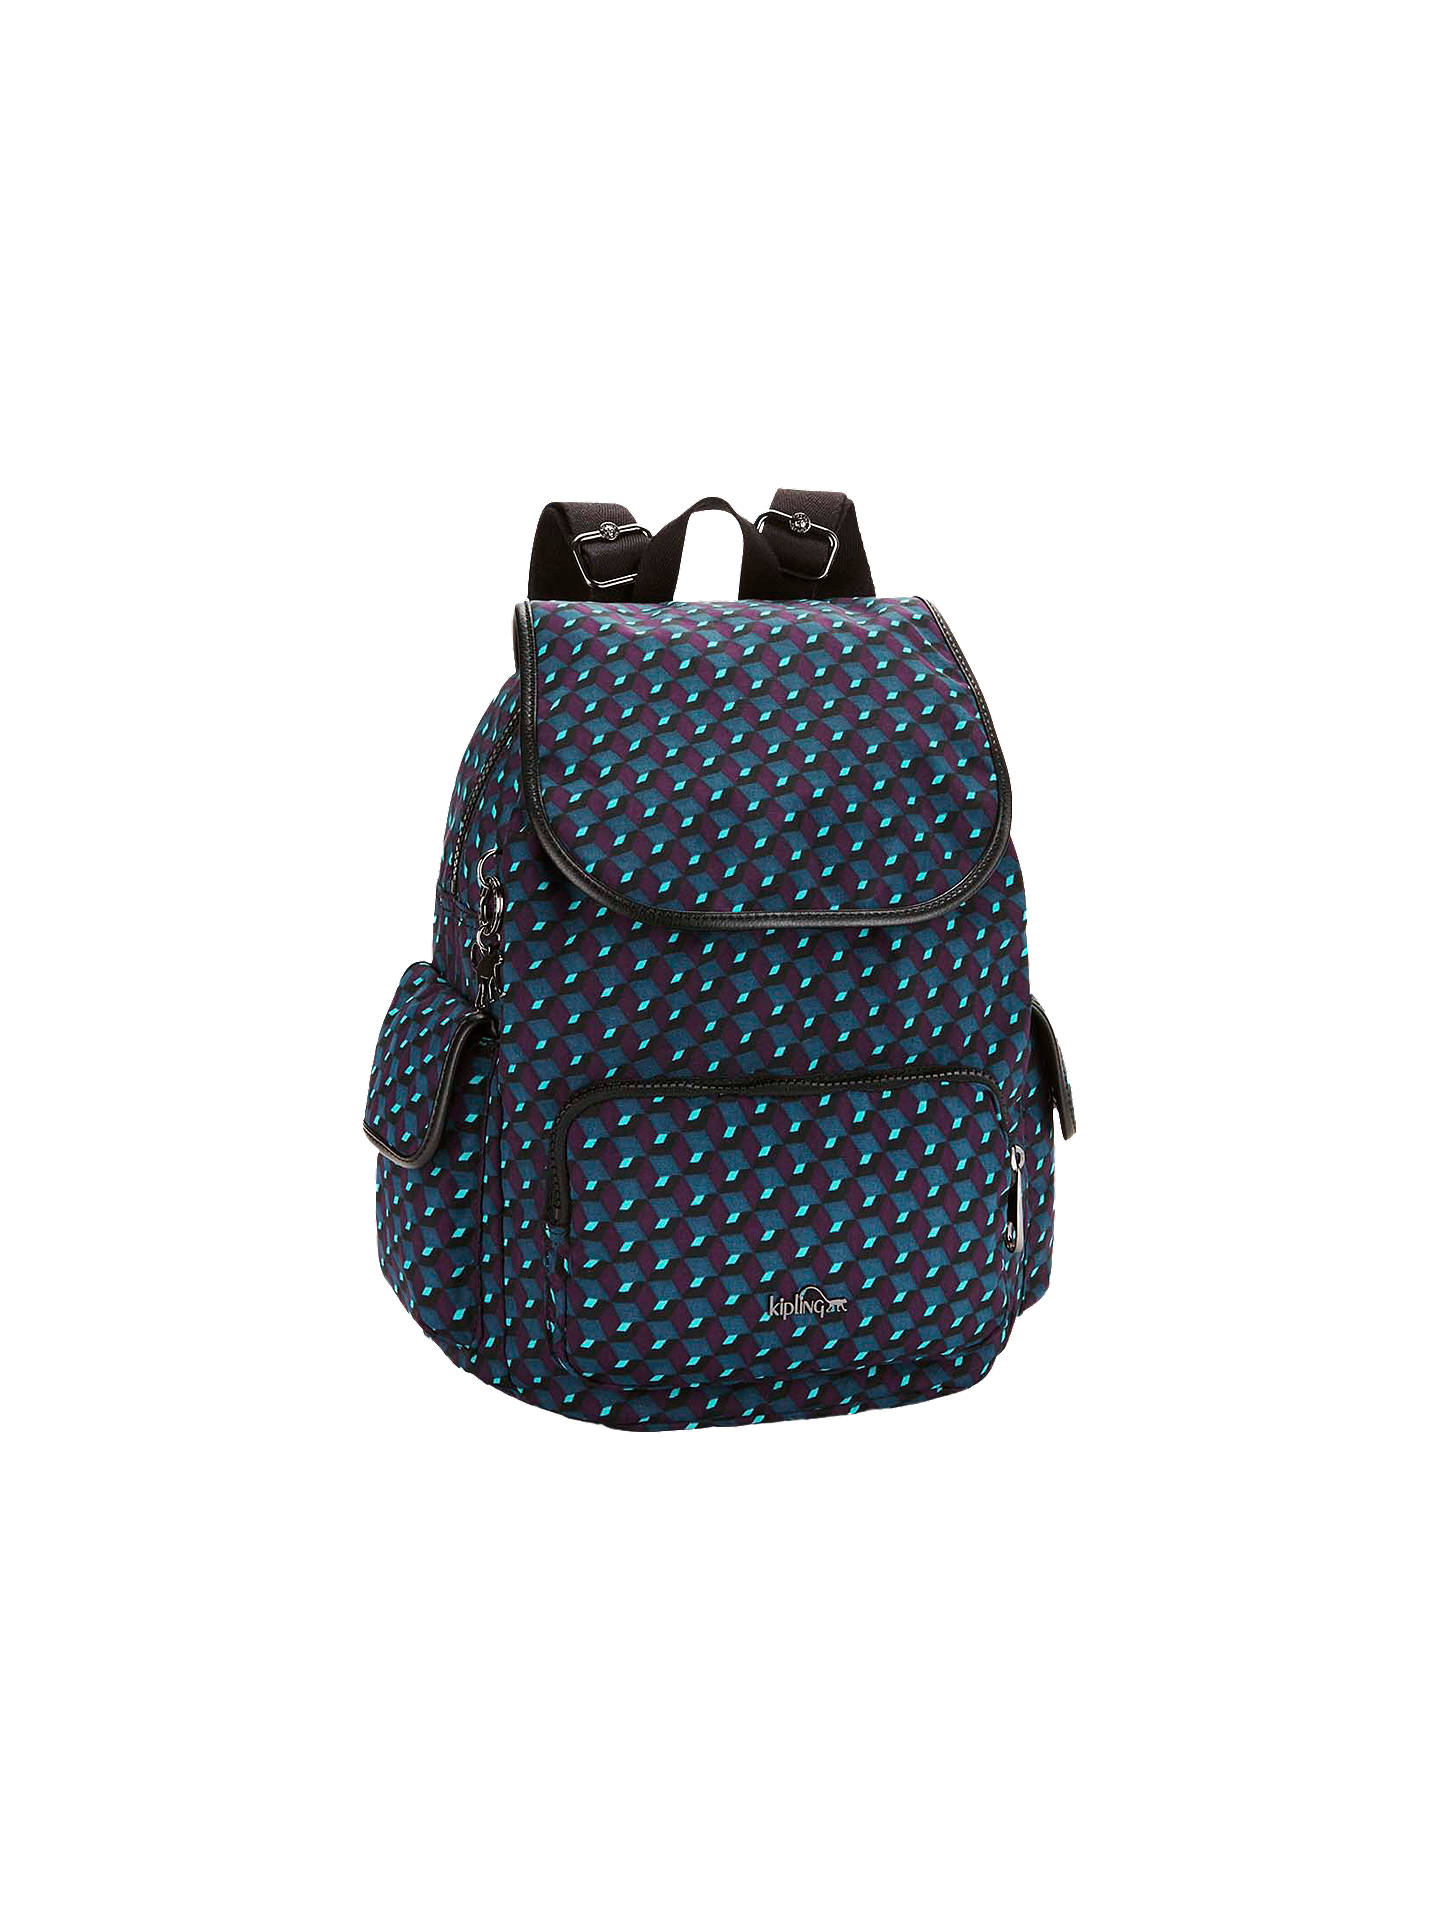 05872b9ff660 Kipling City Pack S Small Backpack at John Lewis   Partners